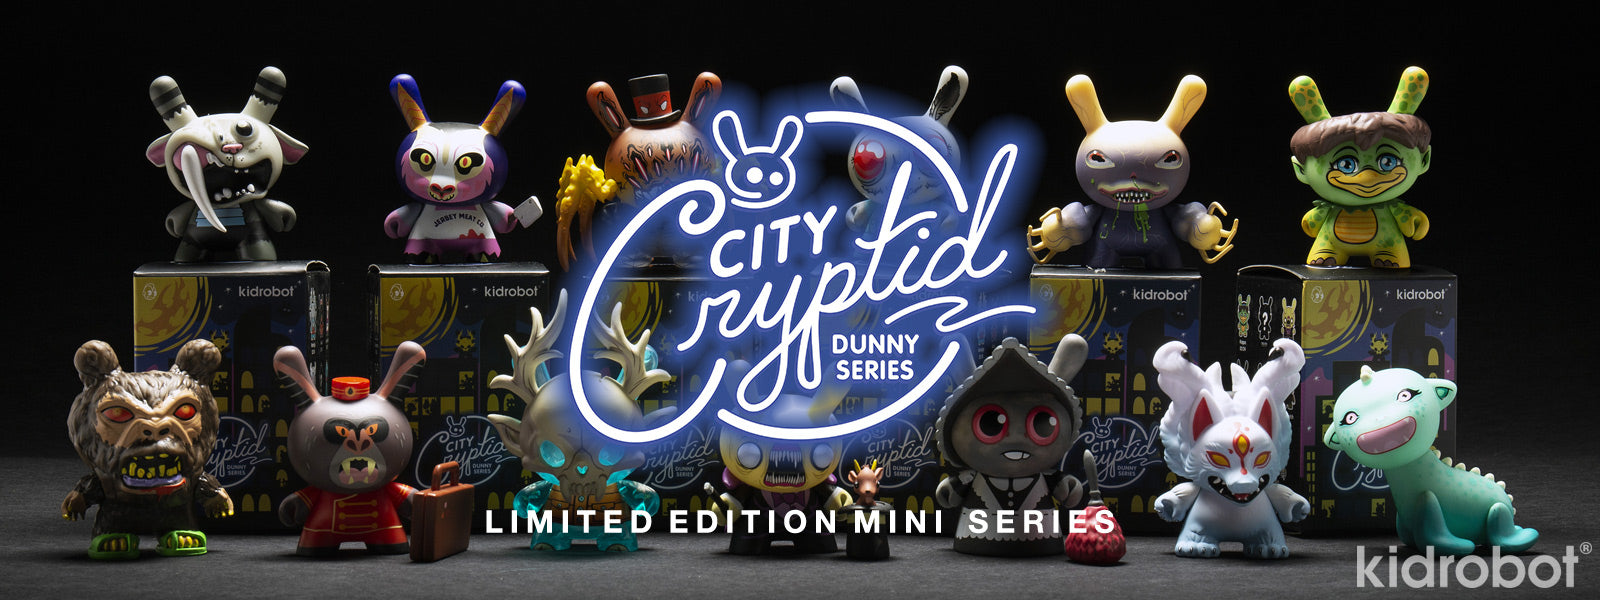 Shop Dunny Art Figures - New City Cryptid Dunny Mini Series by Kidrobot Now Available at Kidrobot.com